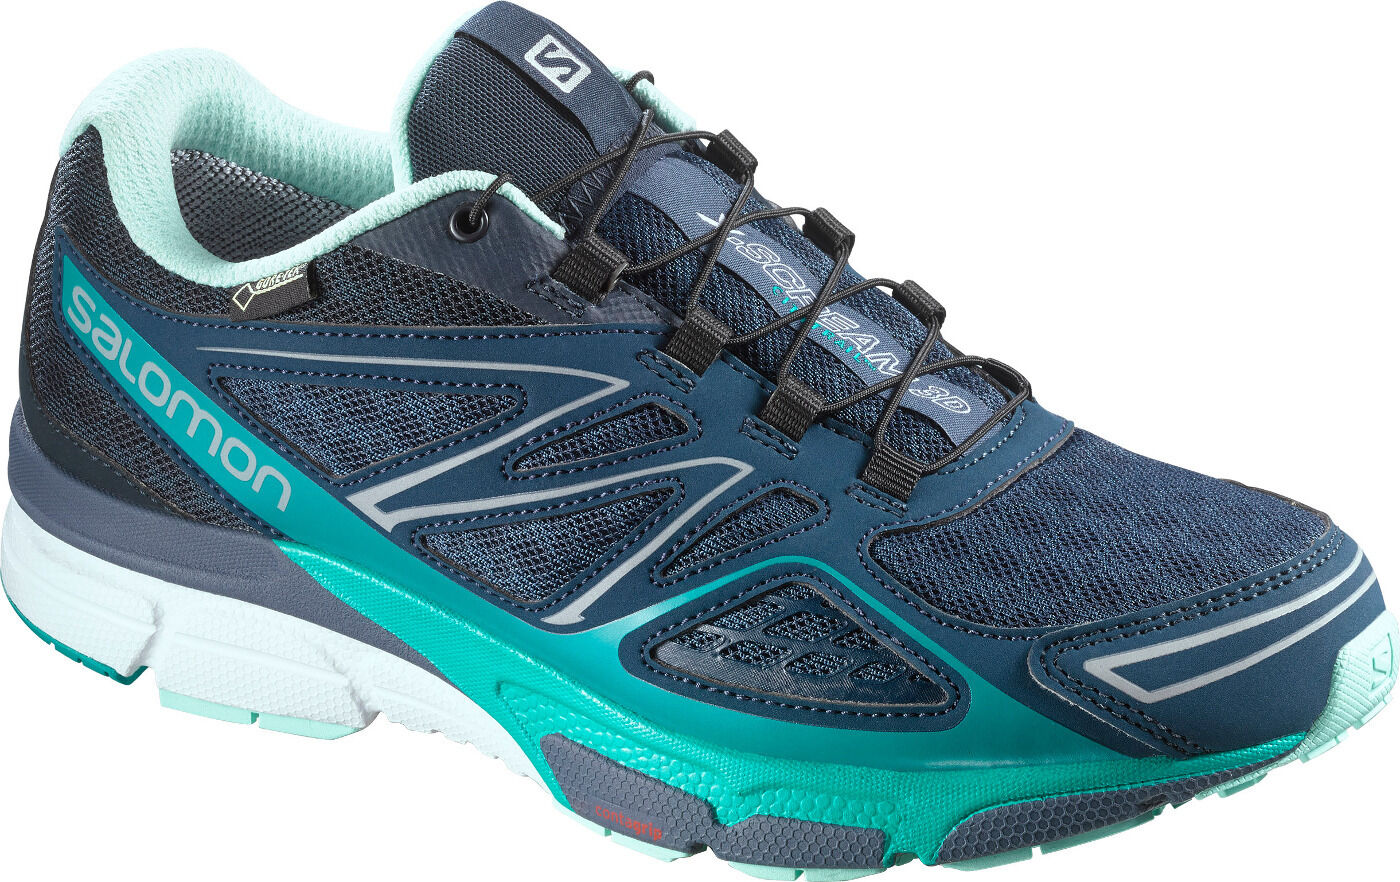 Scarpe Running SALOMON XSCREAM 3D GTX W  LADY mis. 38